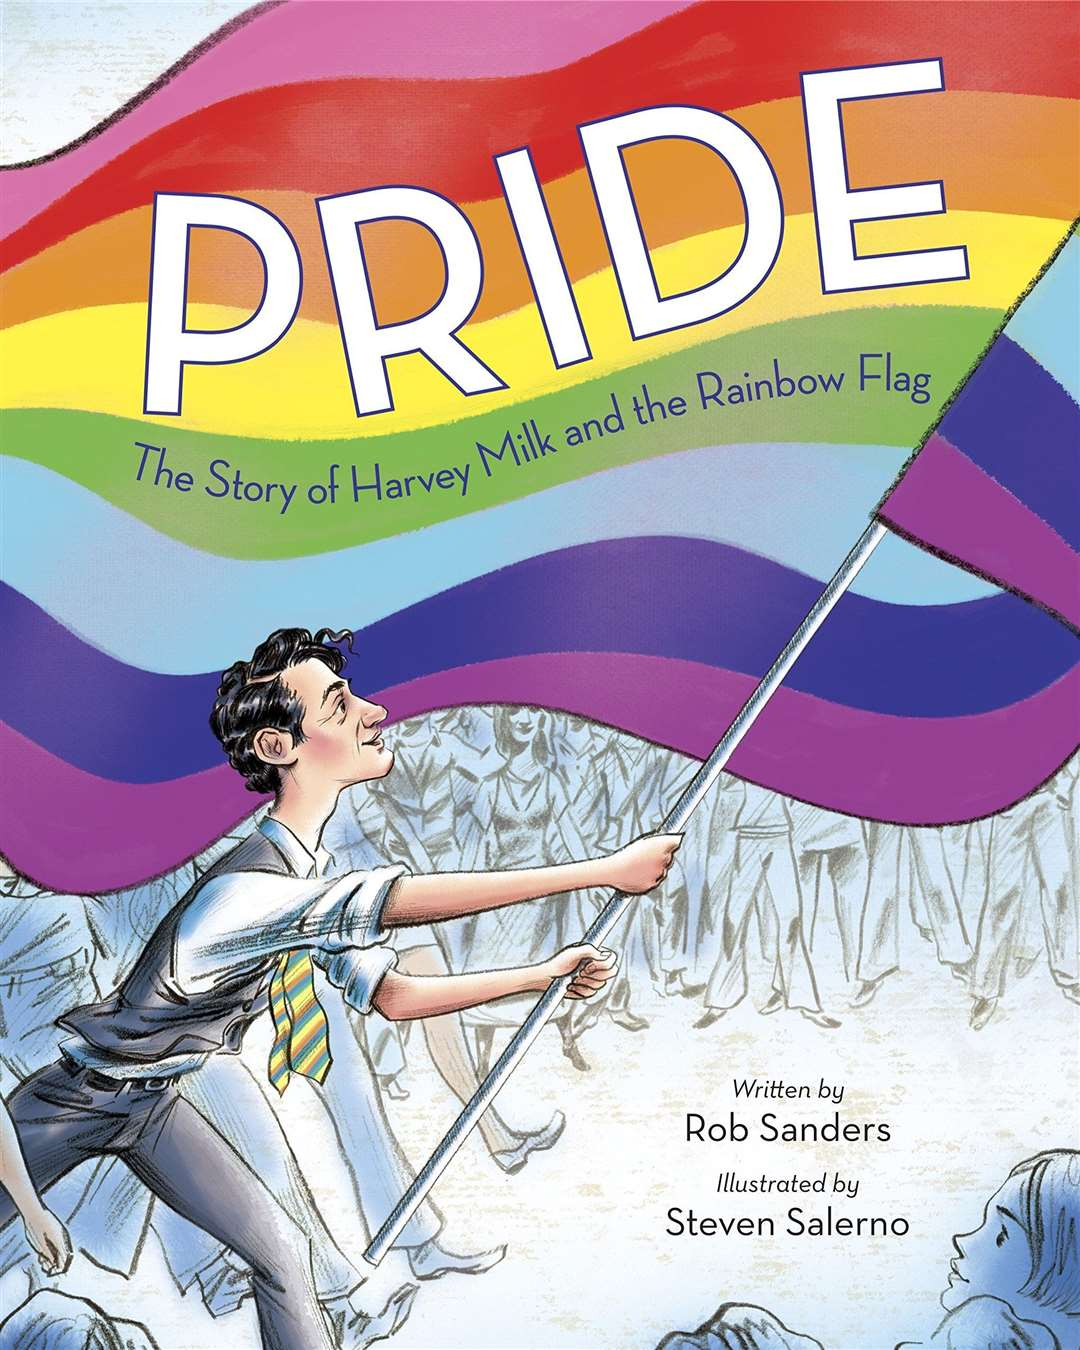 Pride: The Story of Harvey Milk and the Rainbow Flag by Rob Sanders and Steven Salamo (44164562)